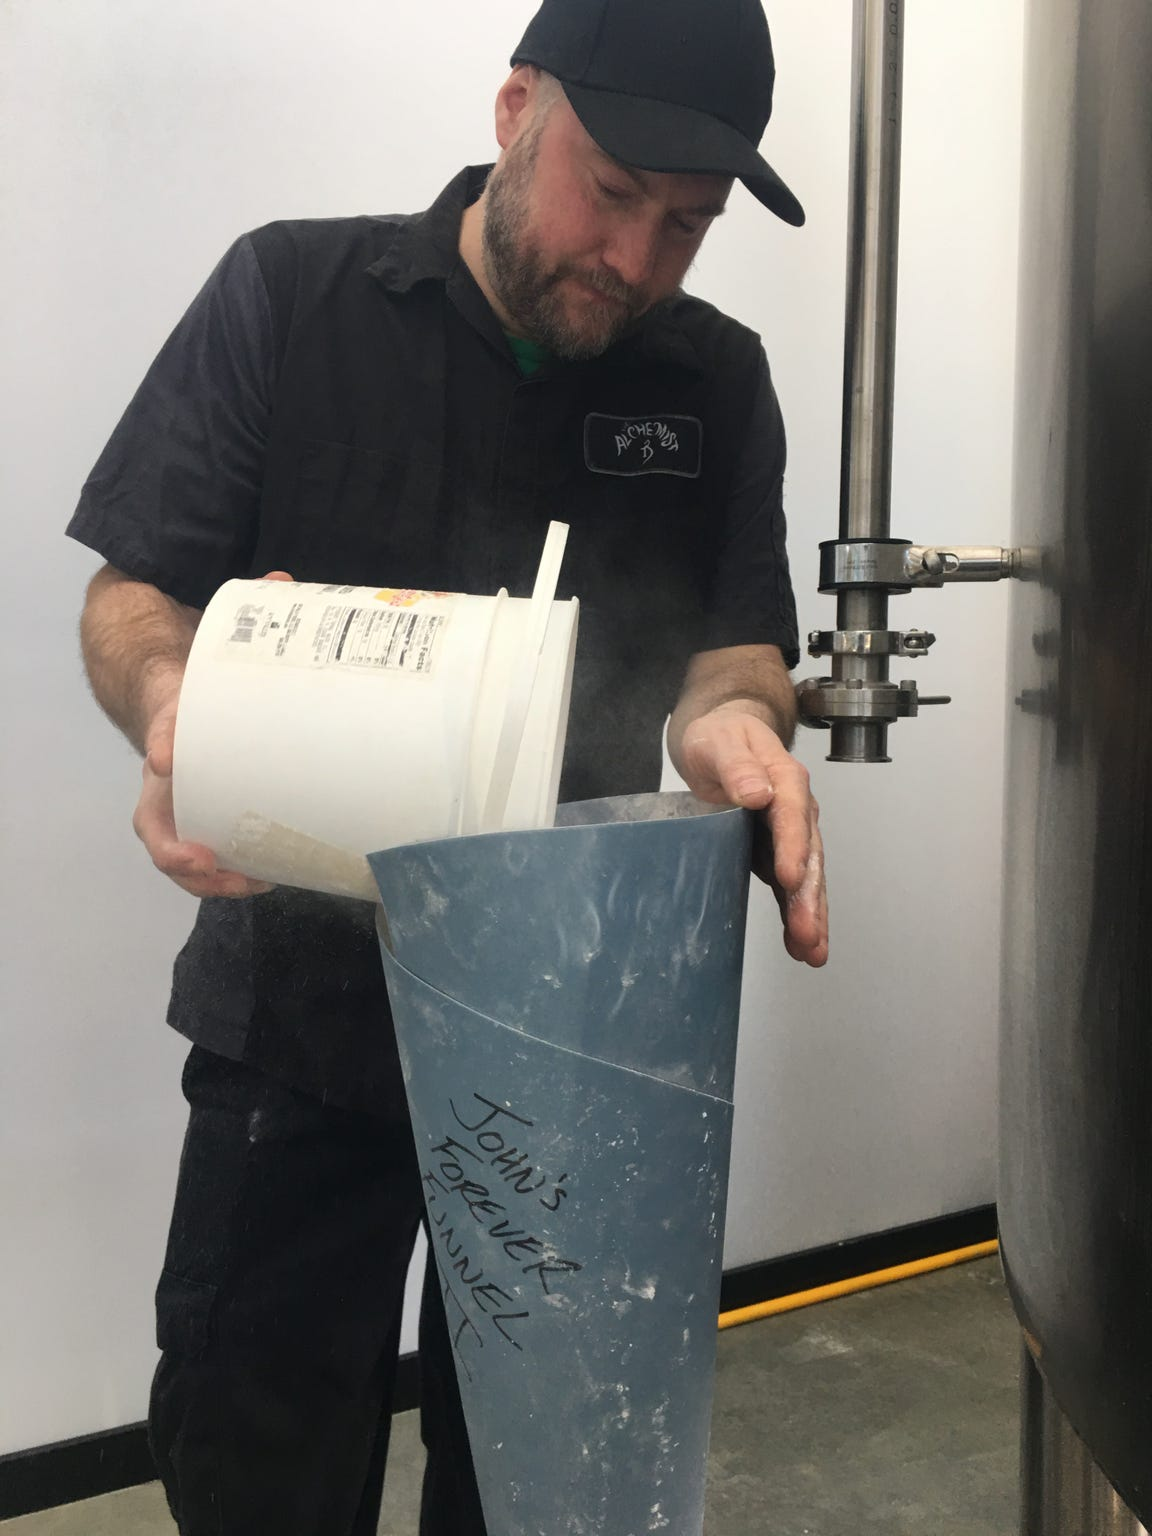 Jim Conroy pours a combination of salts into a funnel to treat the water that will be used to make a batch of Ouroboros beer at The Alchemist in Stowe on Jan. 17, 2019.